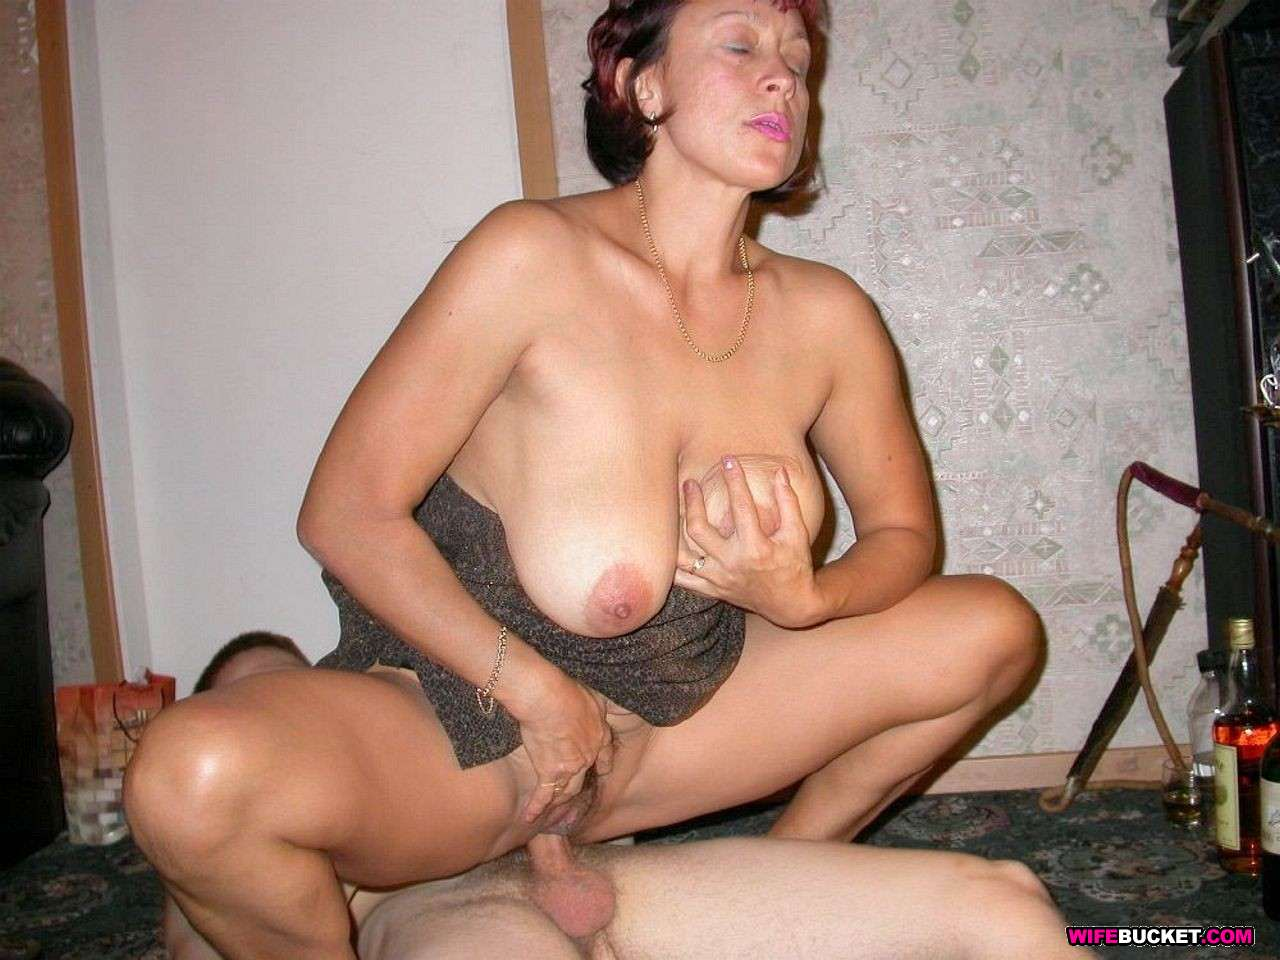 Love my wife amateur privat perfect Party